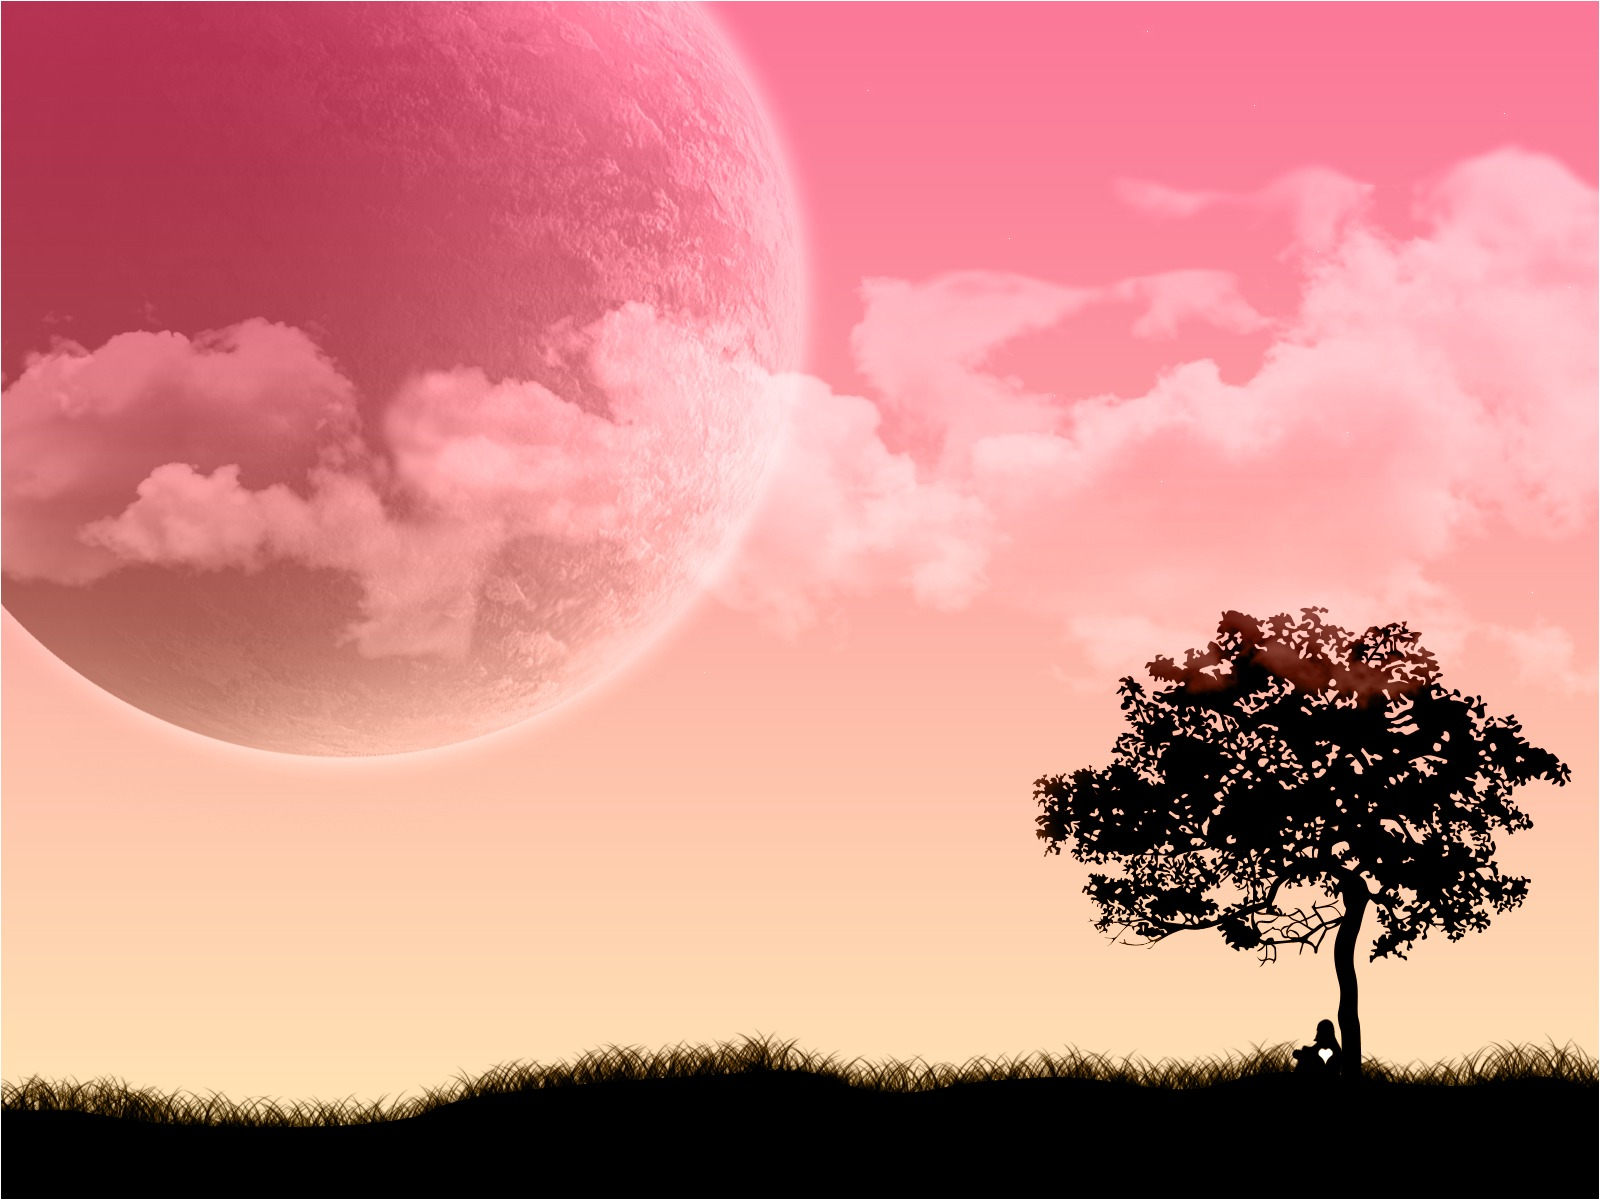 Red moon wallpaper vector 3d wallpapers for free download about